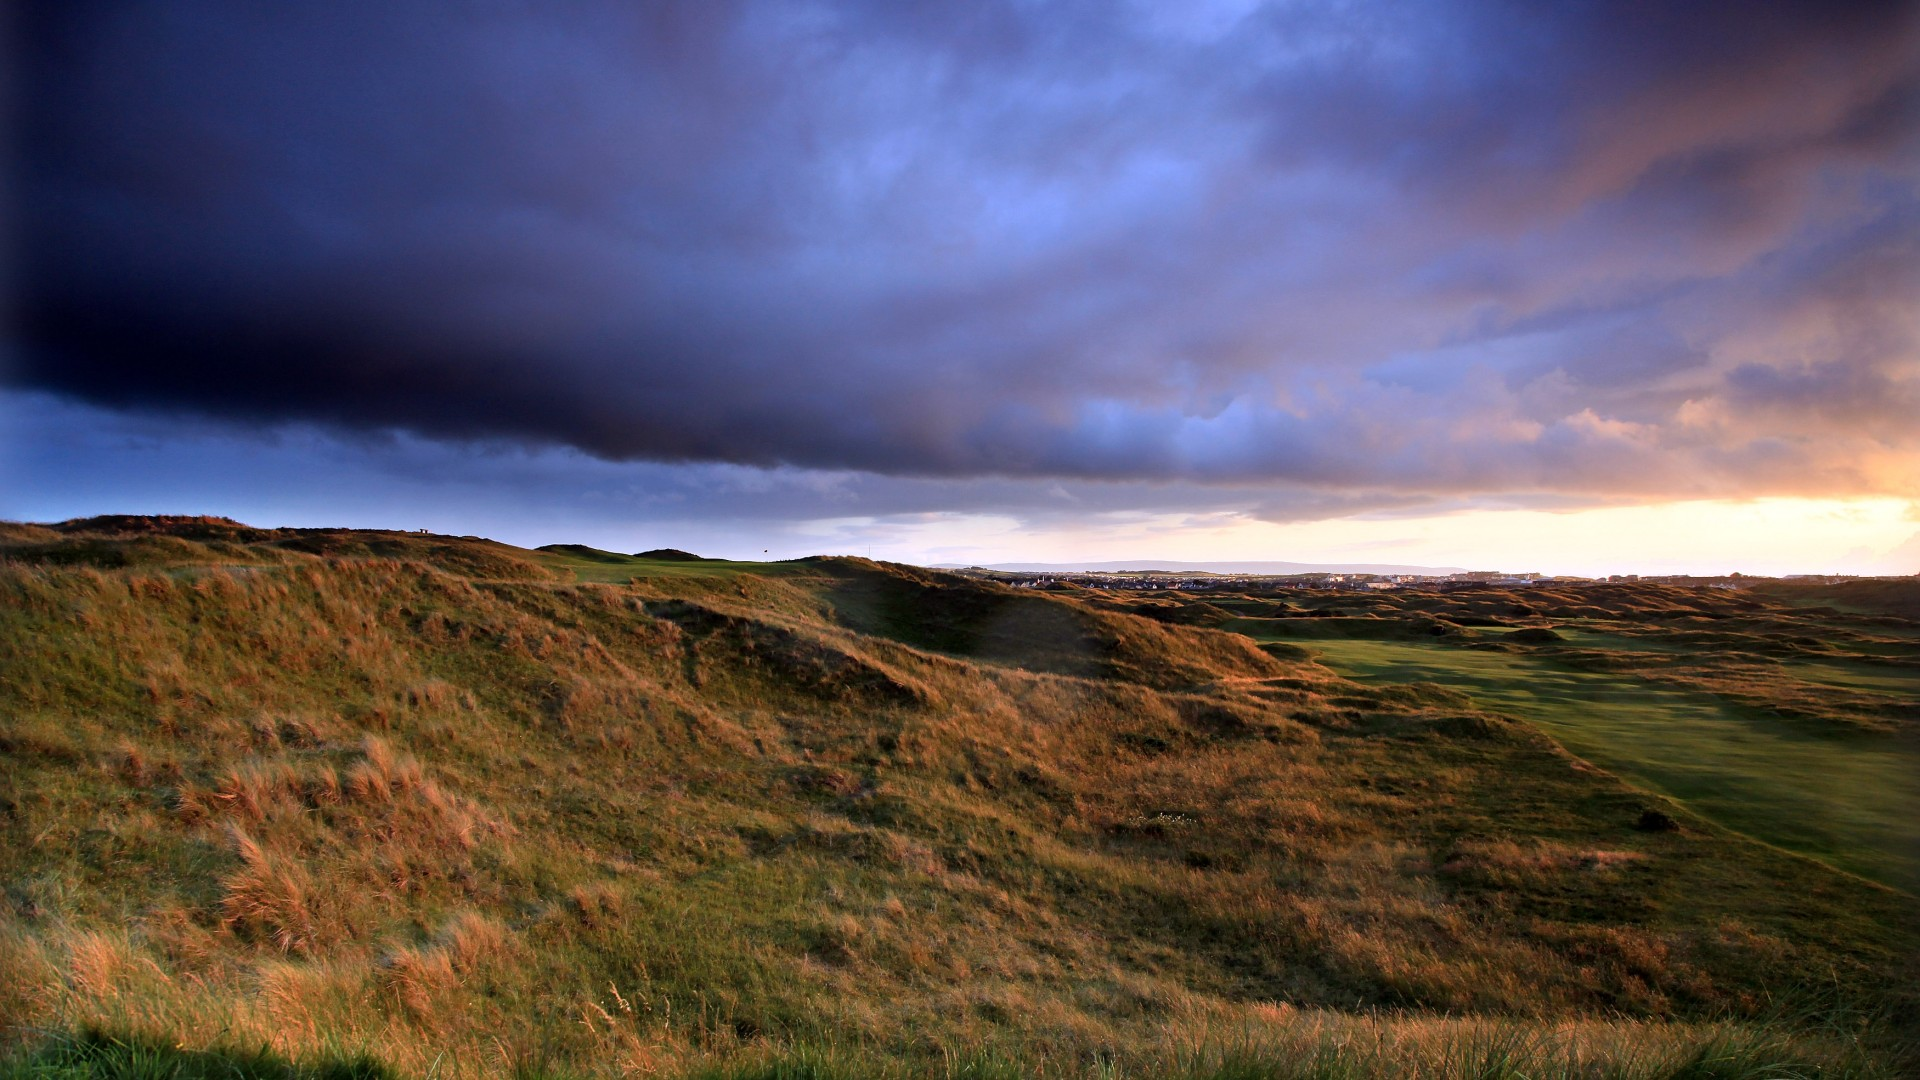 Royal Portrush Golf Club, 14th hole Calamity Corner, The Open 2019